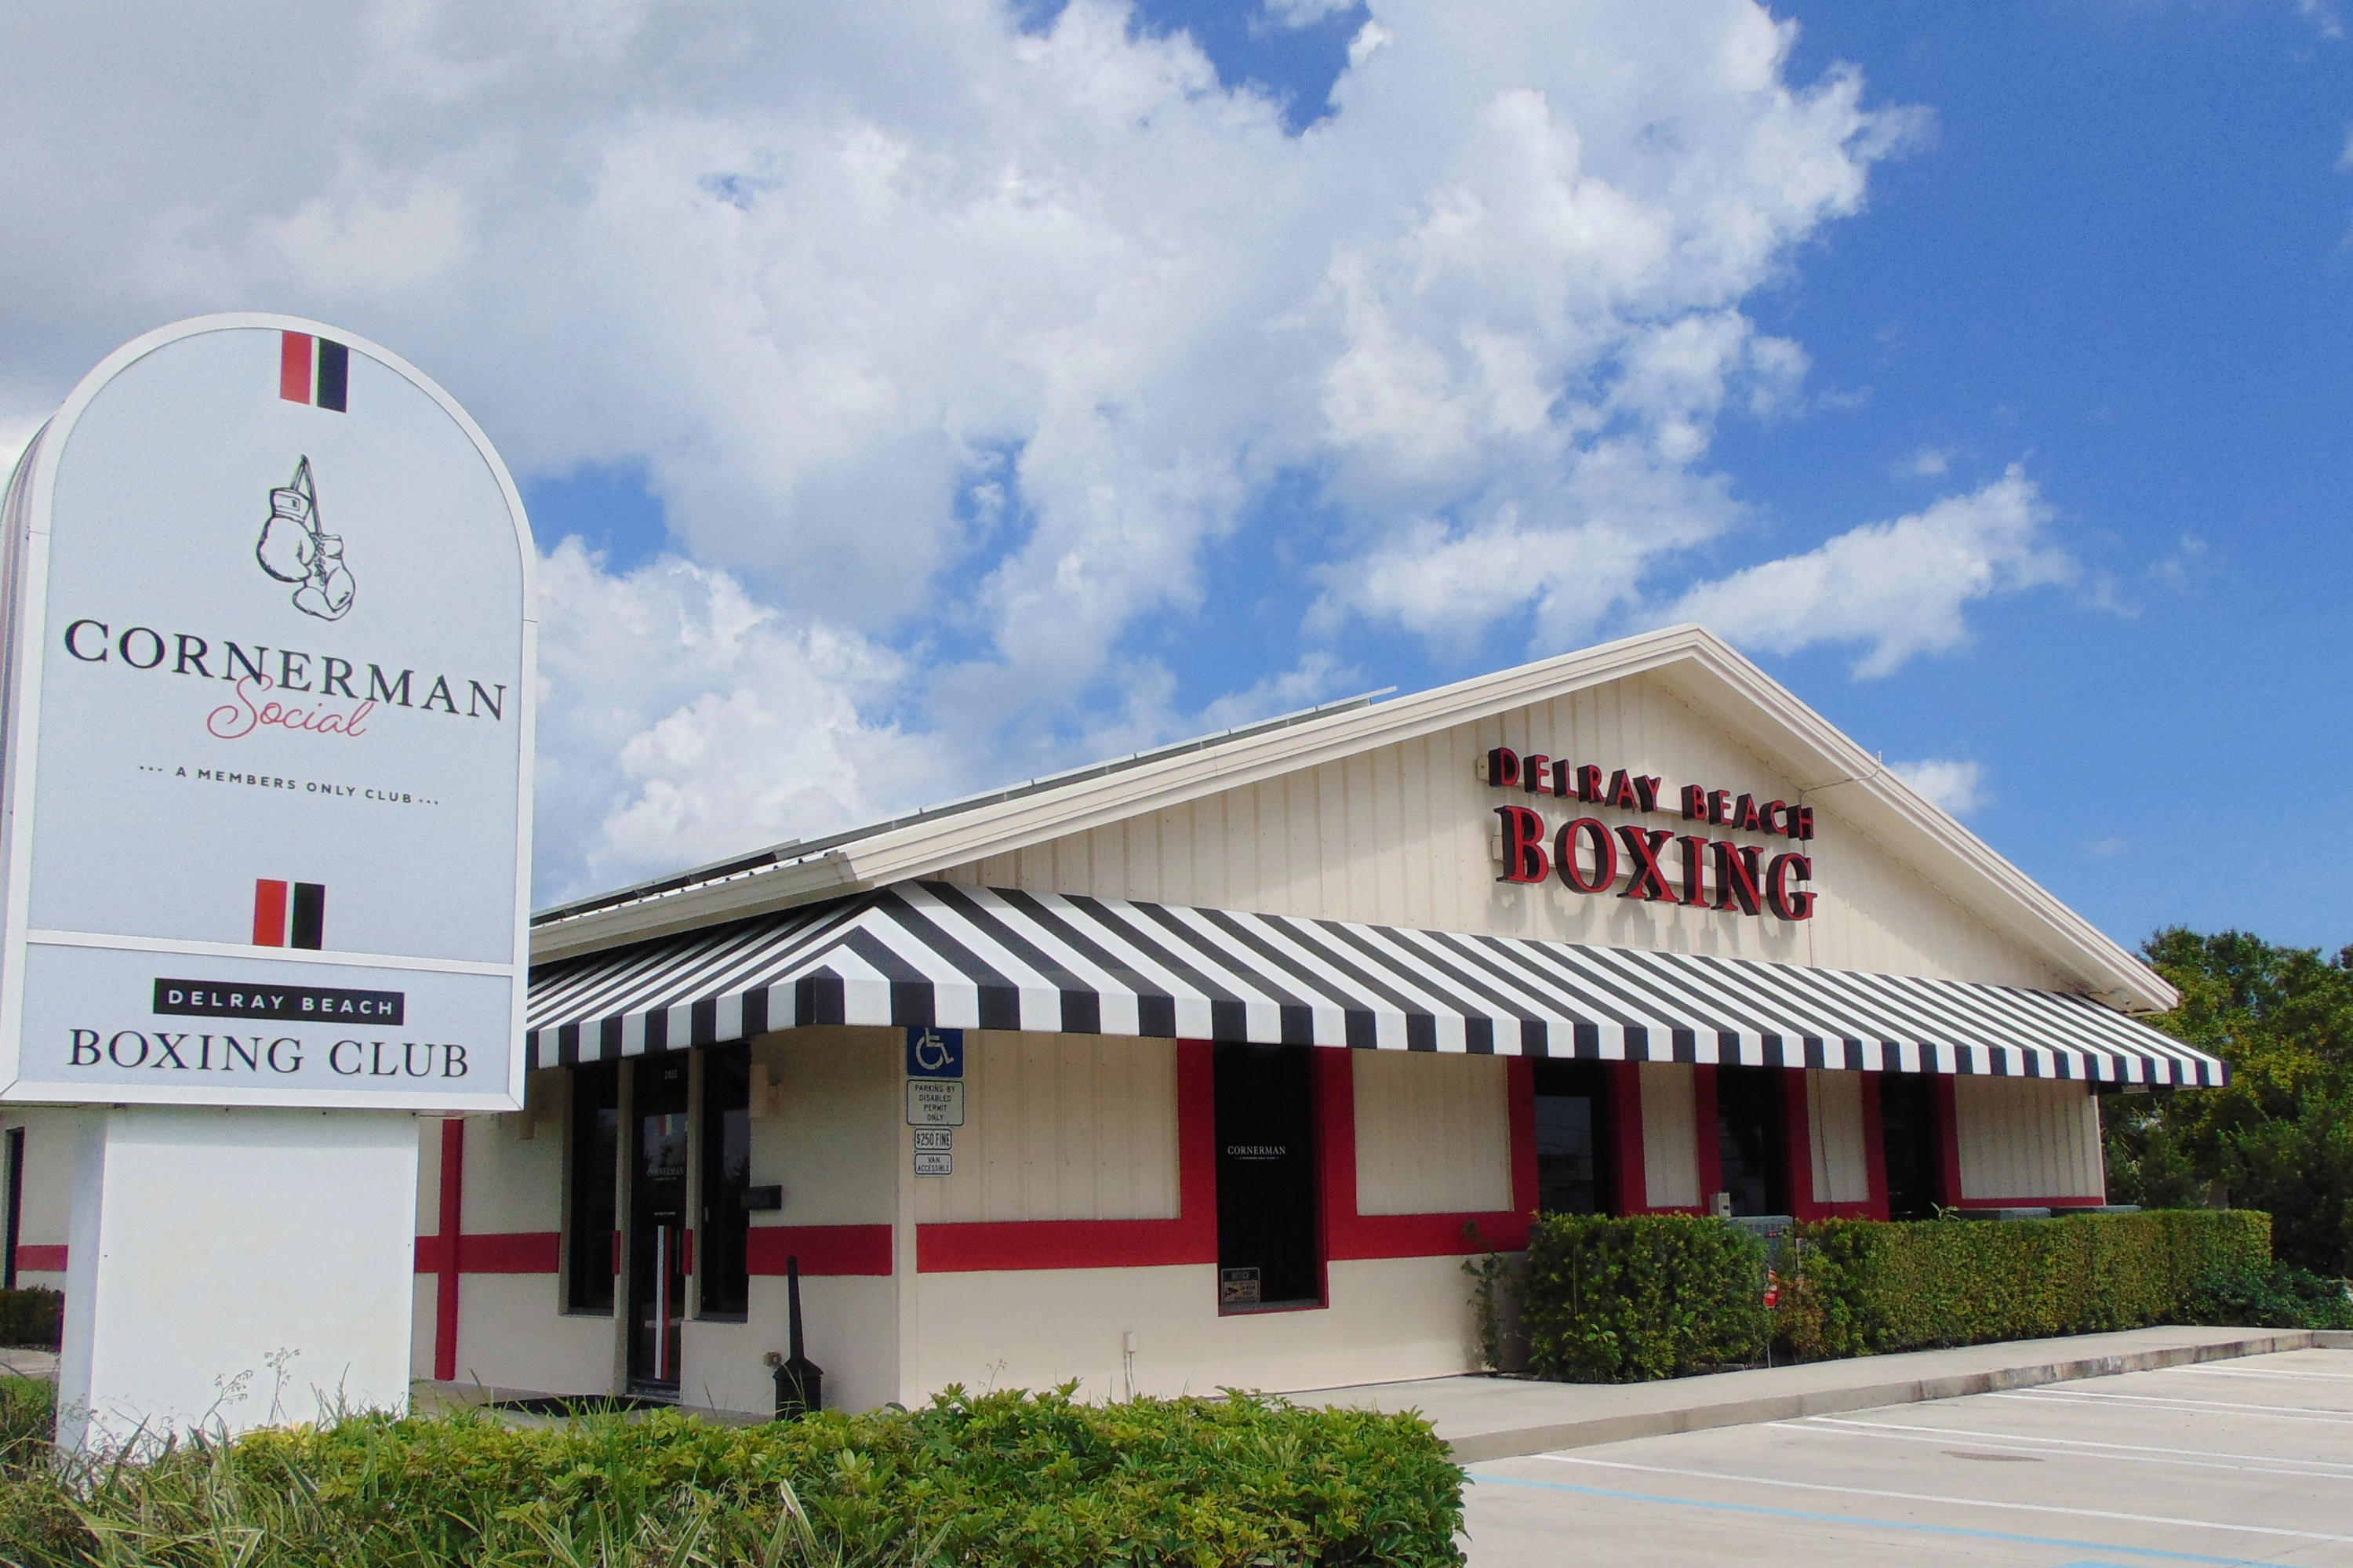 2455 Old Dixie Hwy Highway, Delray Beach, Florida 33483, ,3 BathroomsBathrooms,Commercial Industrial,For Sale,Old Dixie Hwy,RX-10720446